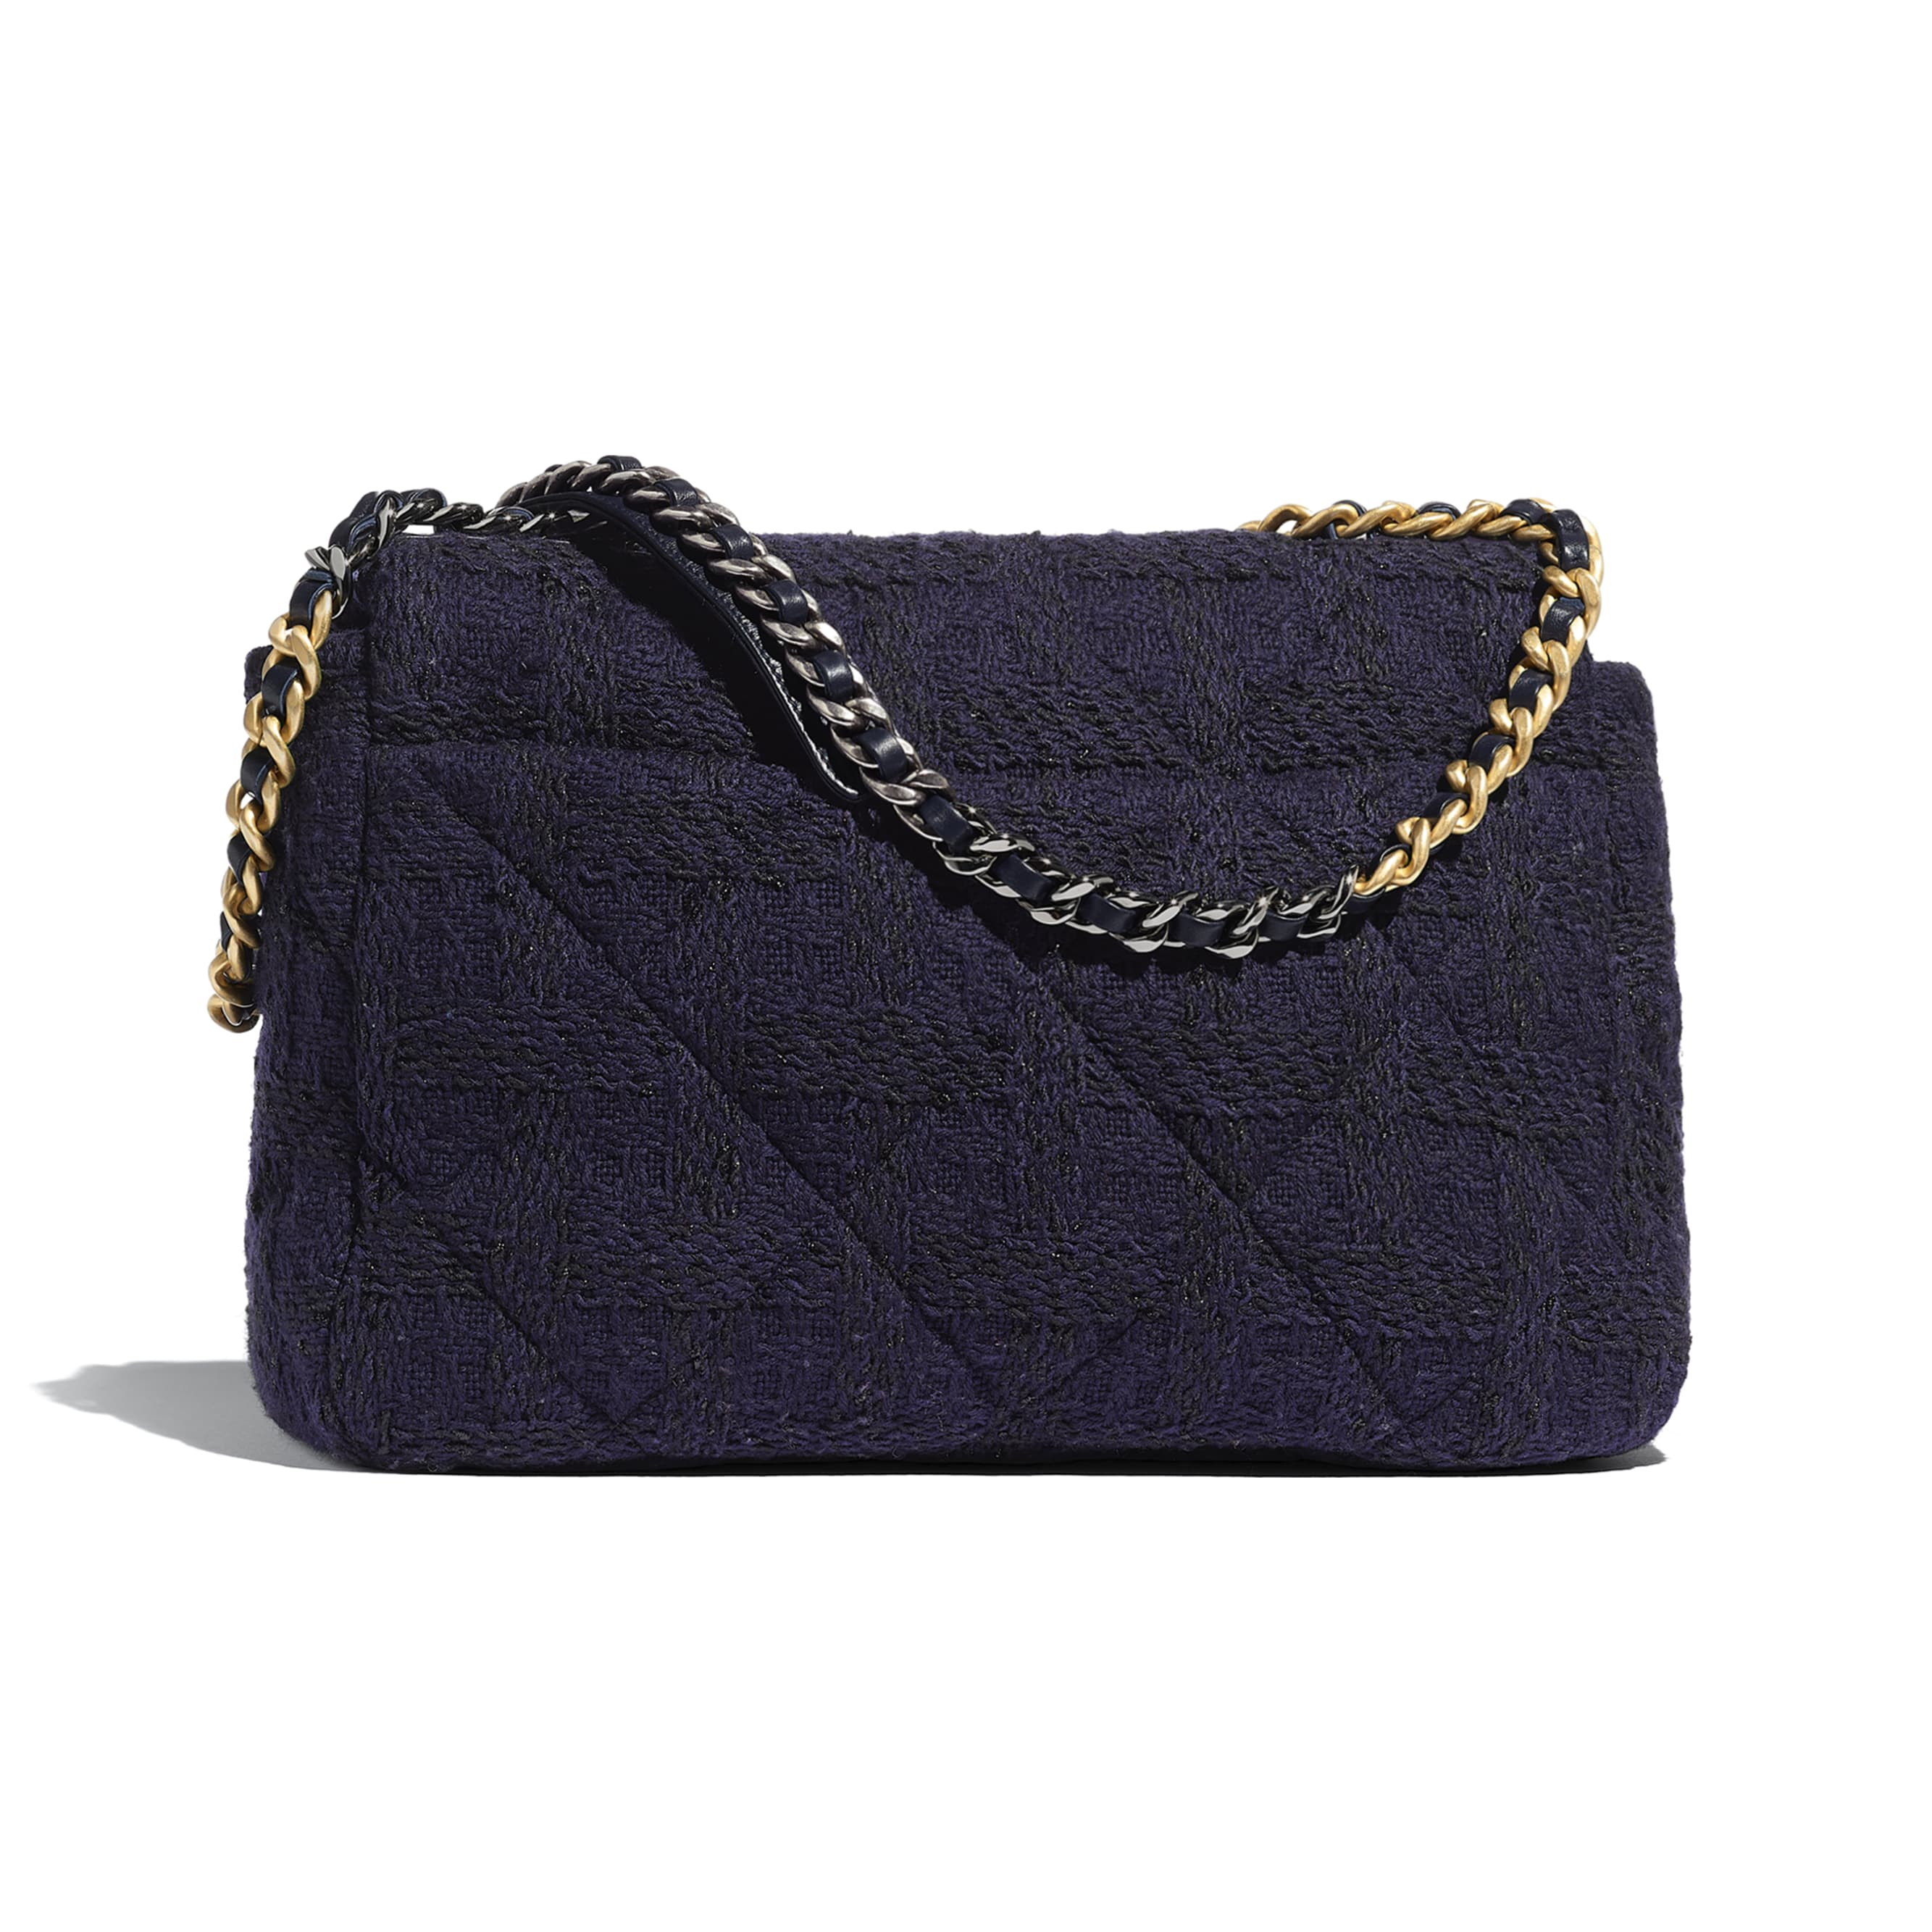 CHANEL 19 Maxi Flap Bag - Navy Blue & Black - Wool Tweed, Gold-Tone, Silver-Tone & Ruthenium-Finish Metal - Alternative view - see standard sized version